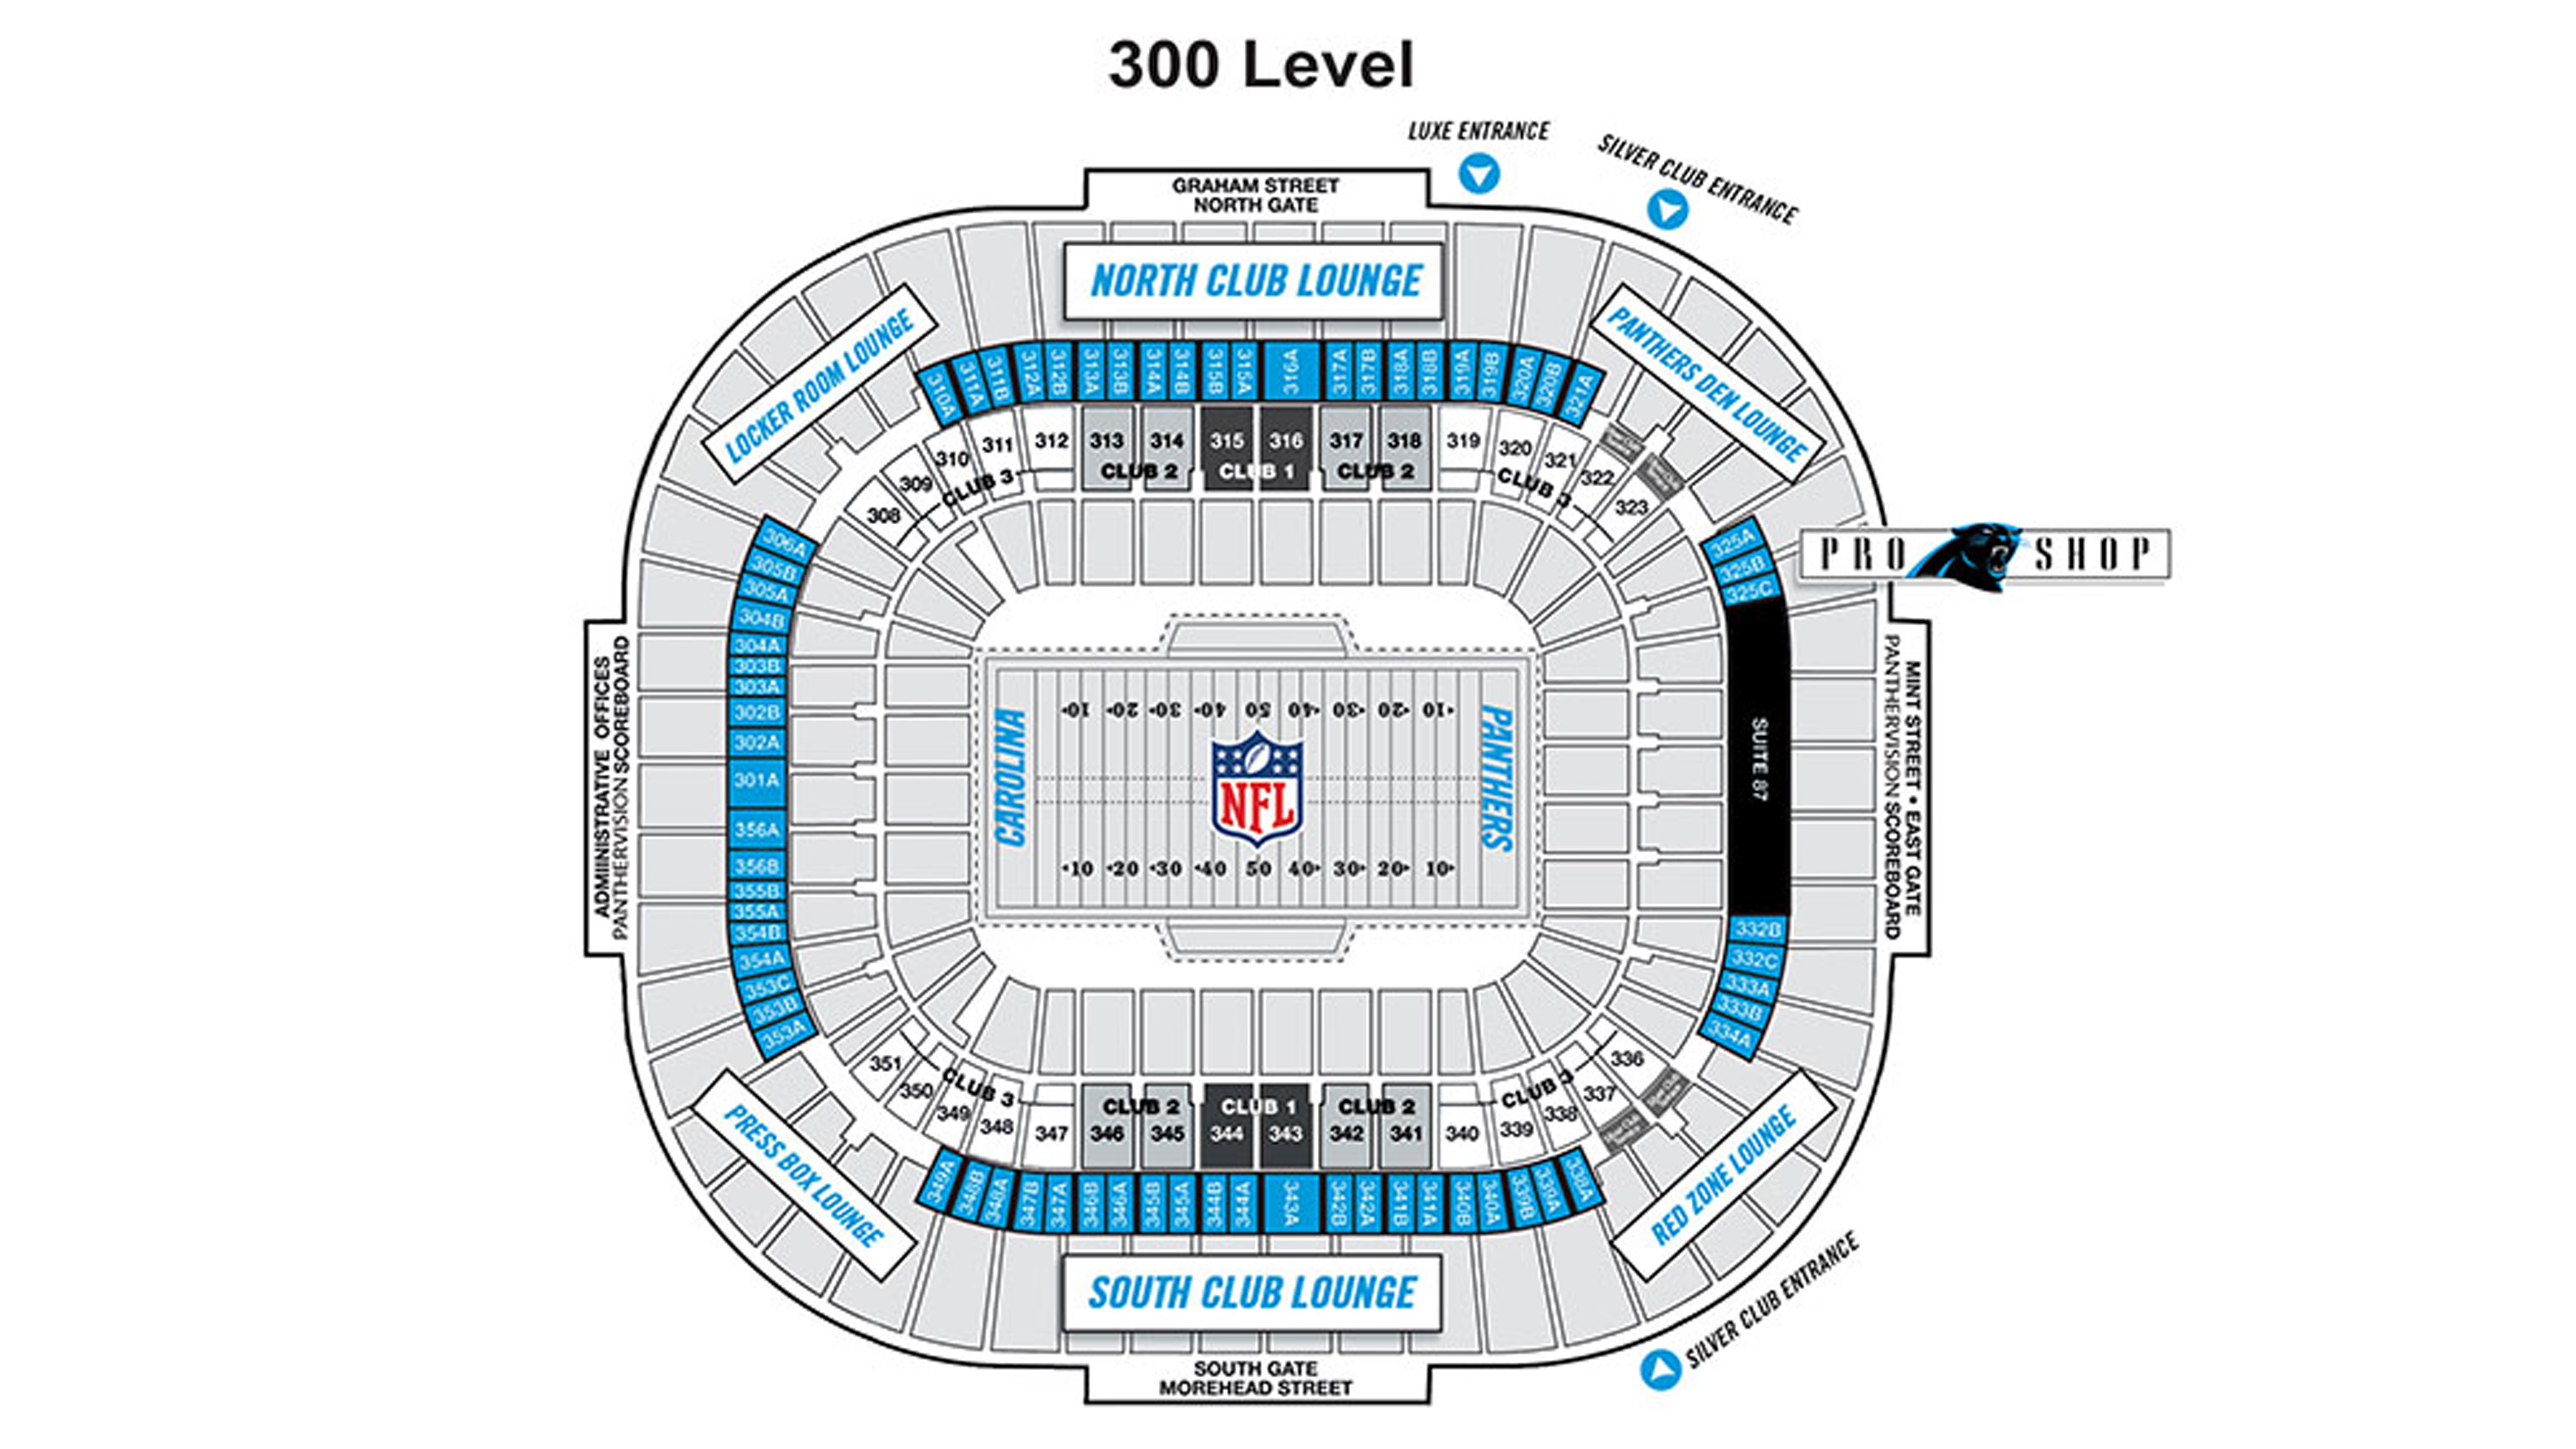 19 New Carolina Panthers Seating Chart with Rows